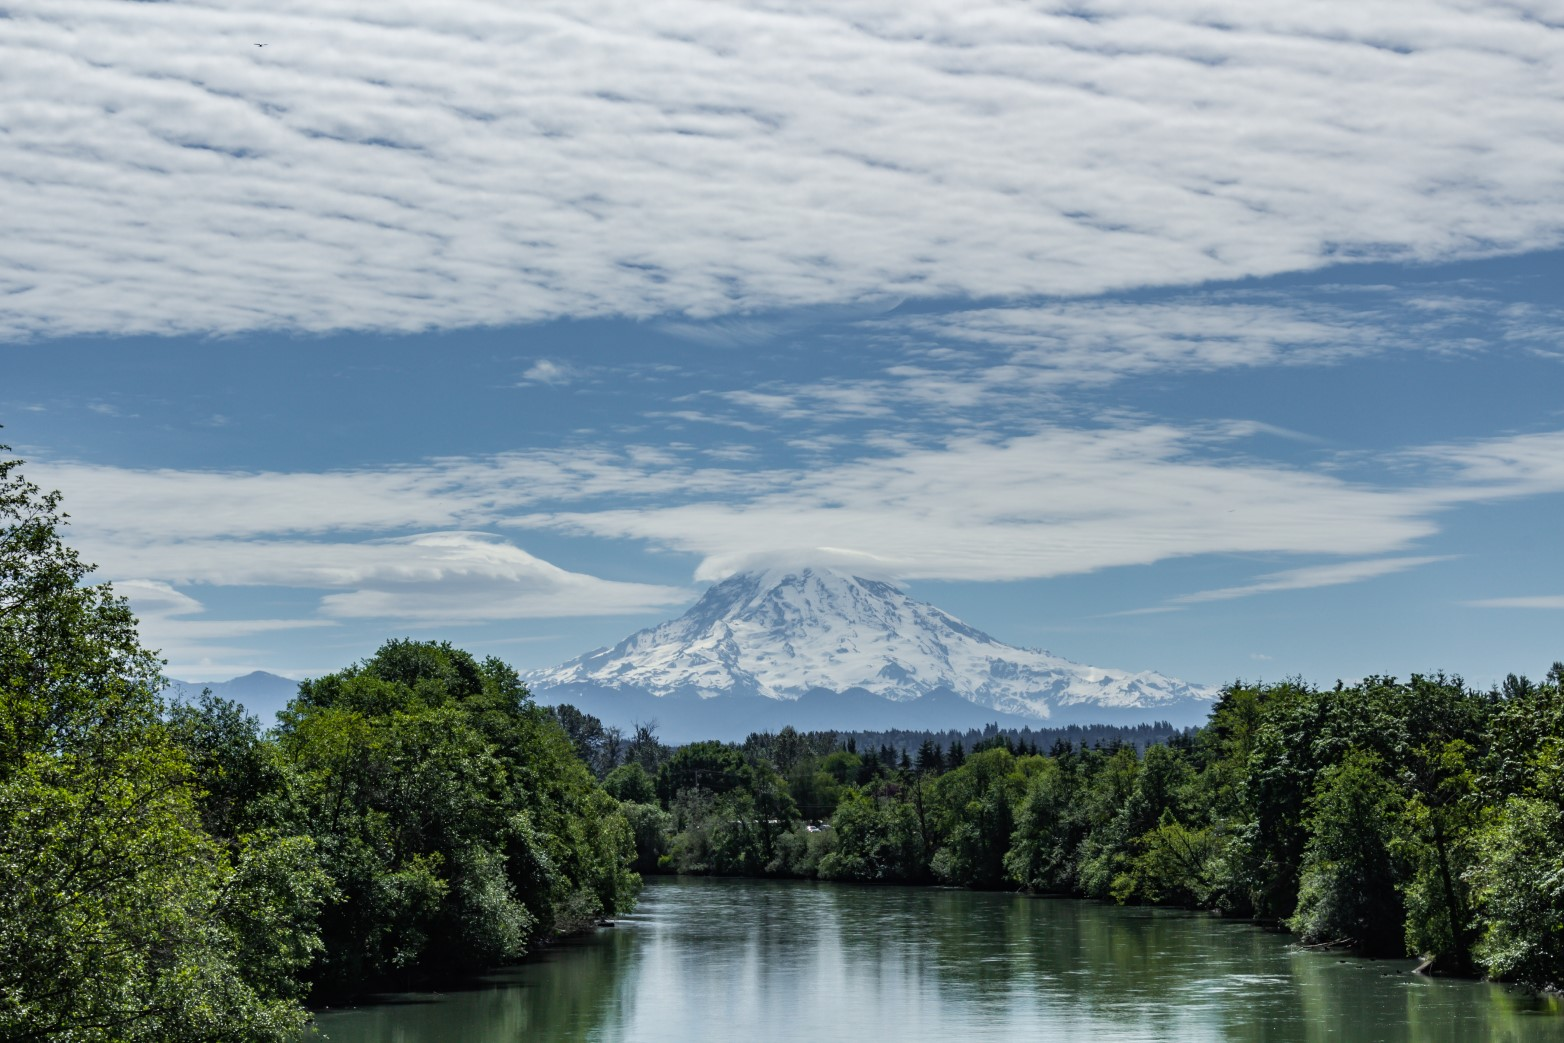 The Puyallup River with Mt. Rainier in the background. Photo by David Seibold